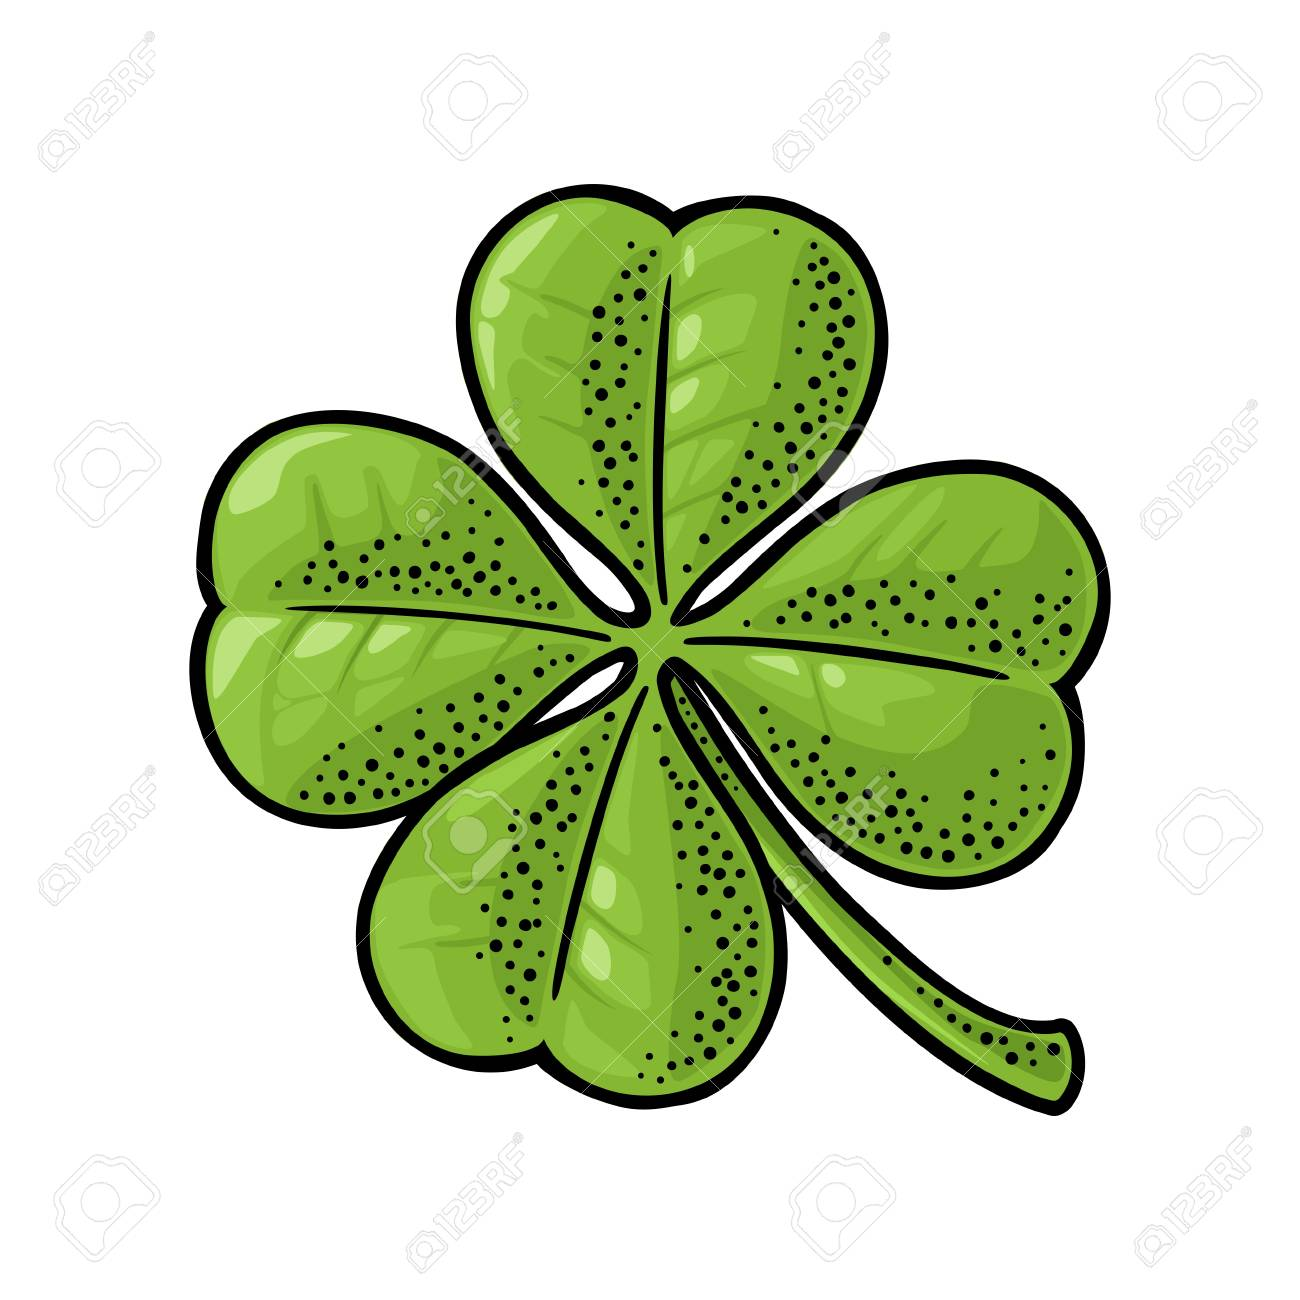 Good Luck Four Leaf Clover Vintage Color Vector Engraving Illustration Isolated On White Background